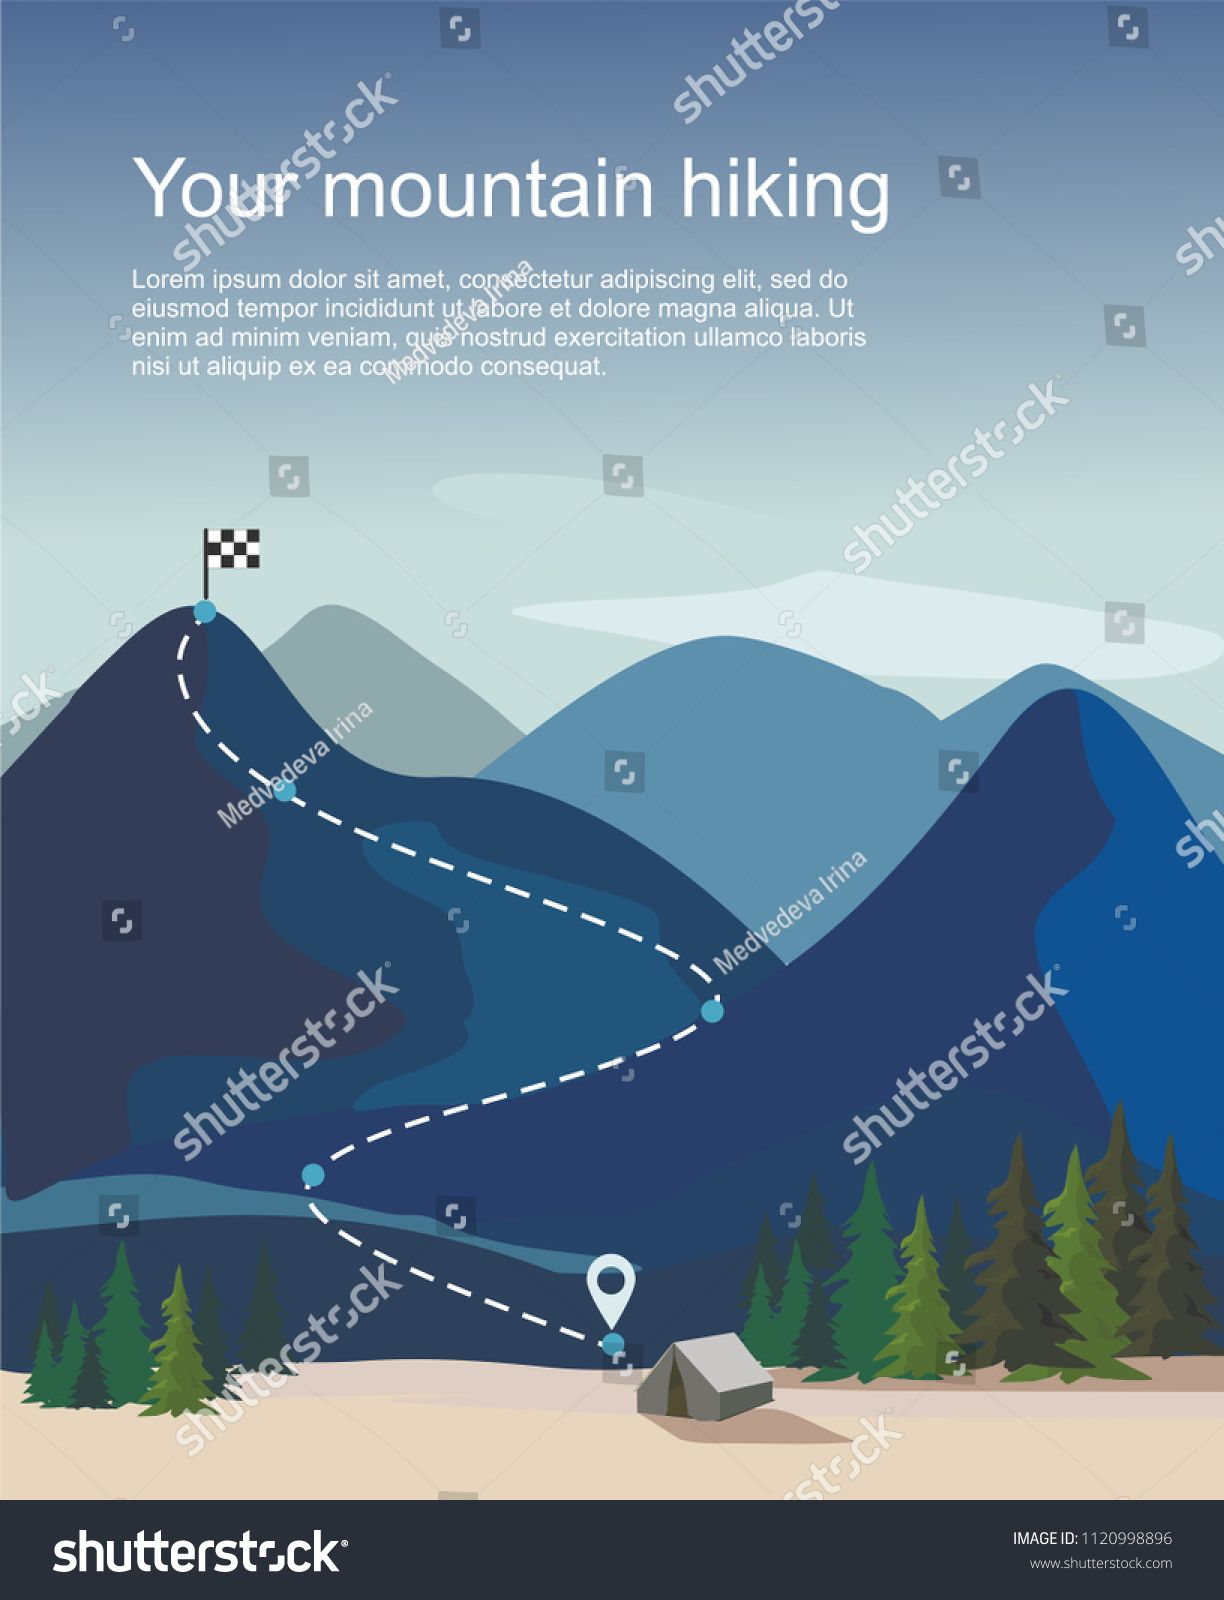 Hiking Route Infographic Layers Of Mountain Landscape With Fir Trees Vector Illustration Ad Ad Layers Mount Hiking Routes Mountain Landscape Landscape